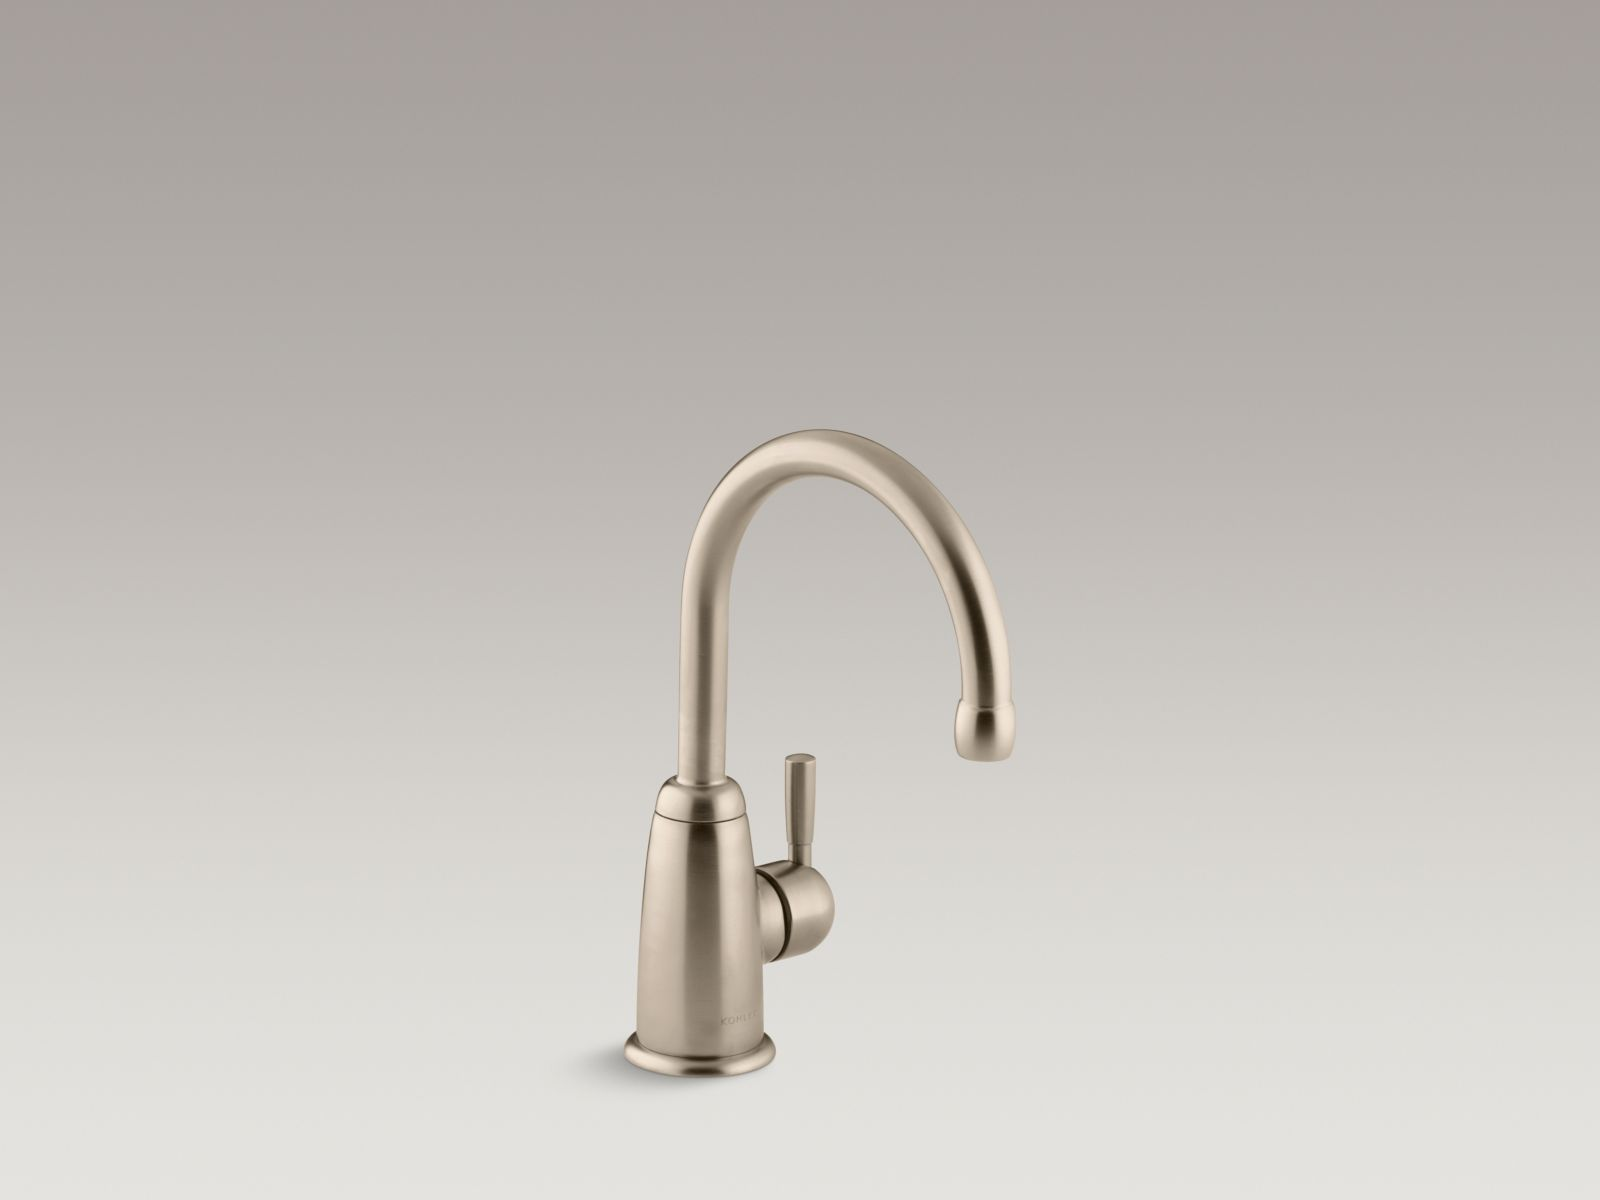 Kohler K-6665-BV Wellspring Single-handle Beverage Faucet with Contemporary Design Brushed Bronze